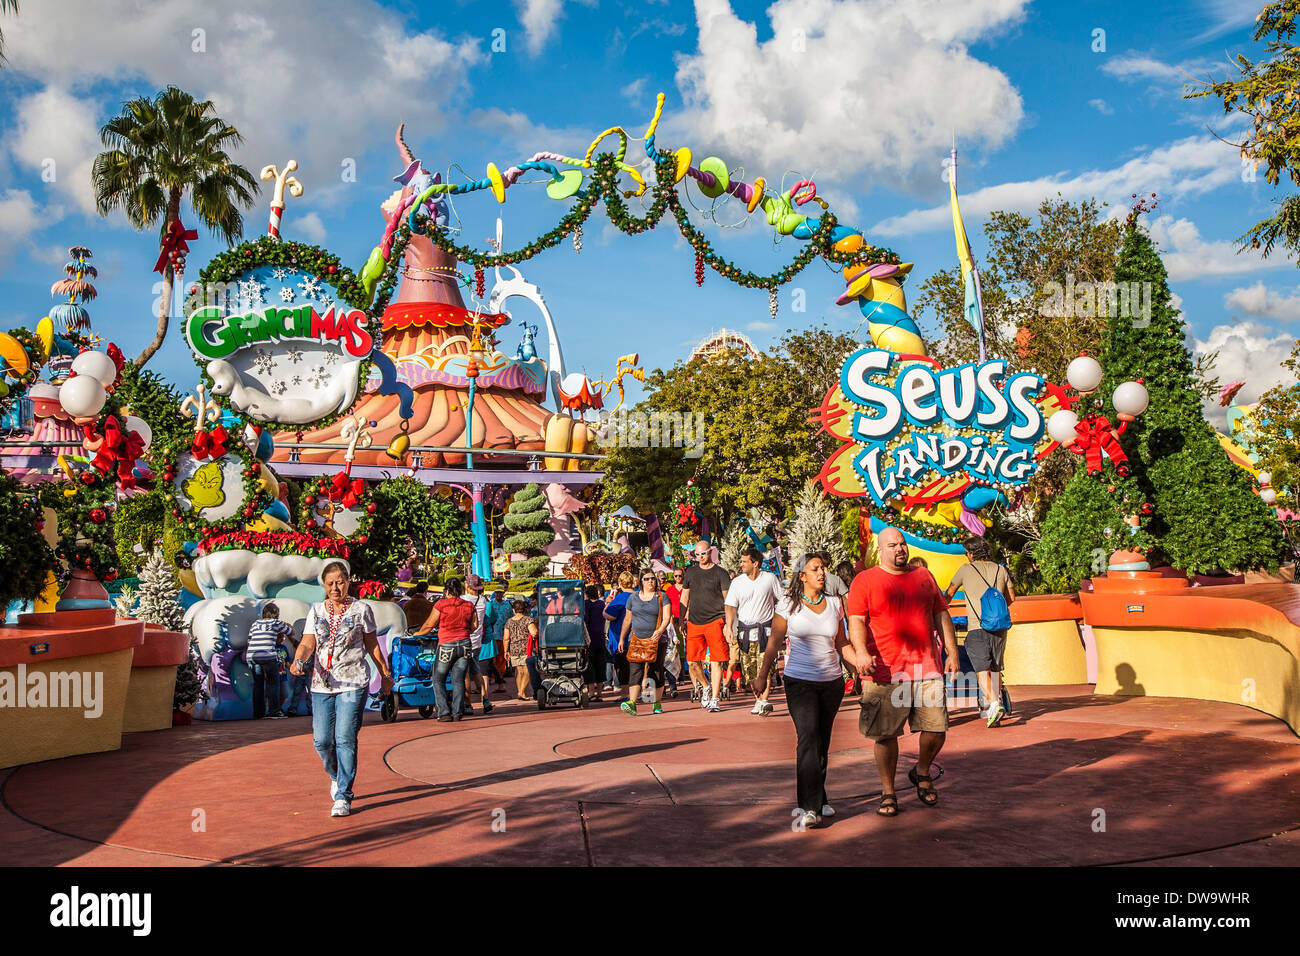 Park guests at entrance to Seuss Landing at Universal Studios Islands of Adventure in Orlando, Florida - Stock Image